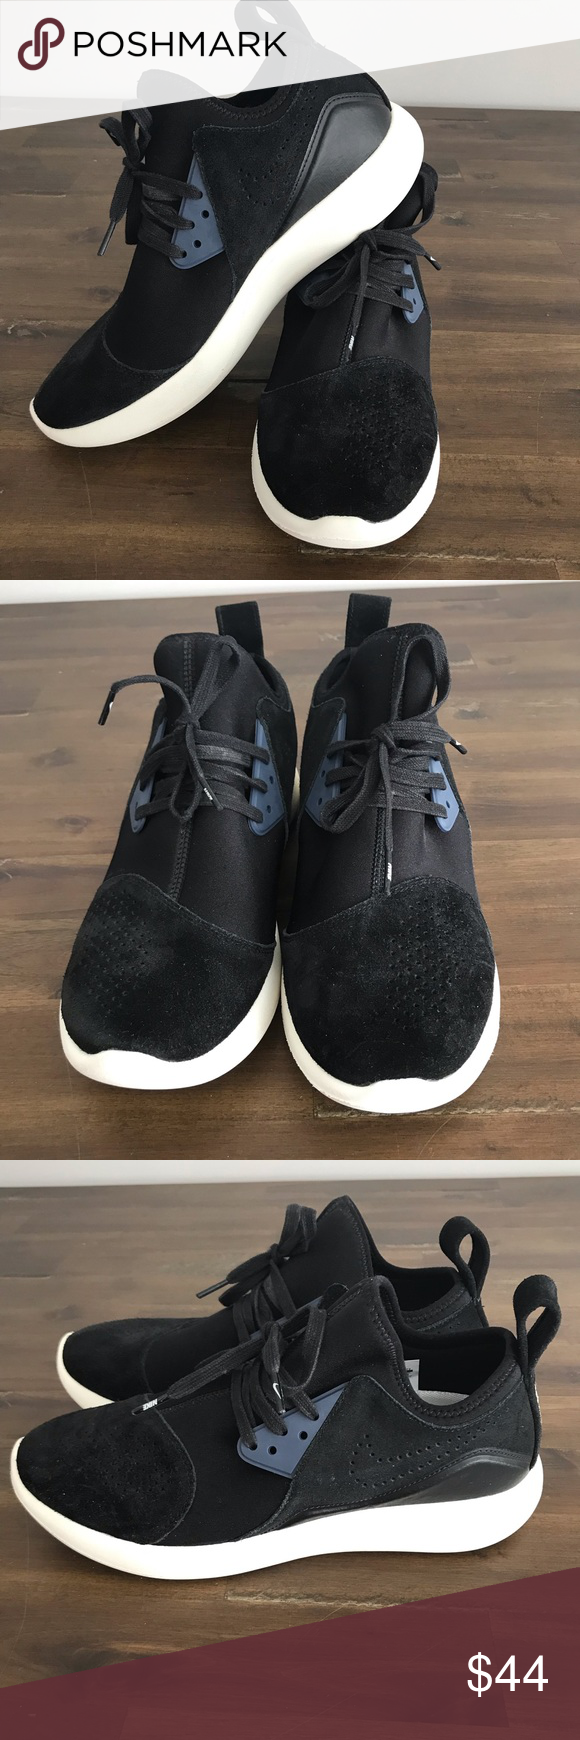 Nike-Lunarcharge Black-Sail-Thunder-Blue Size 10 Nike-Lunarcharge-Premium- Black-Sail-Thunder-Blue-923281-014 Mens size 10 Nike Shoes Sneakers cb9a16440